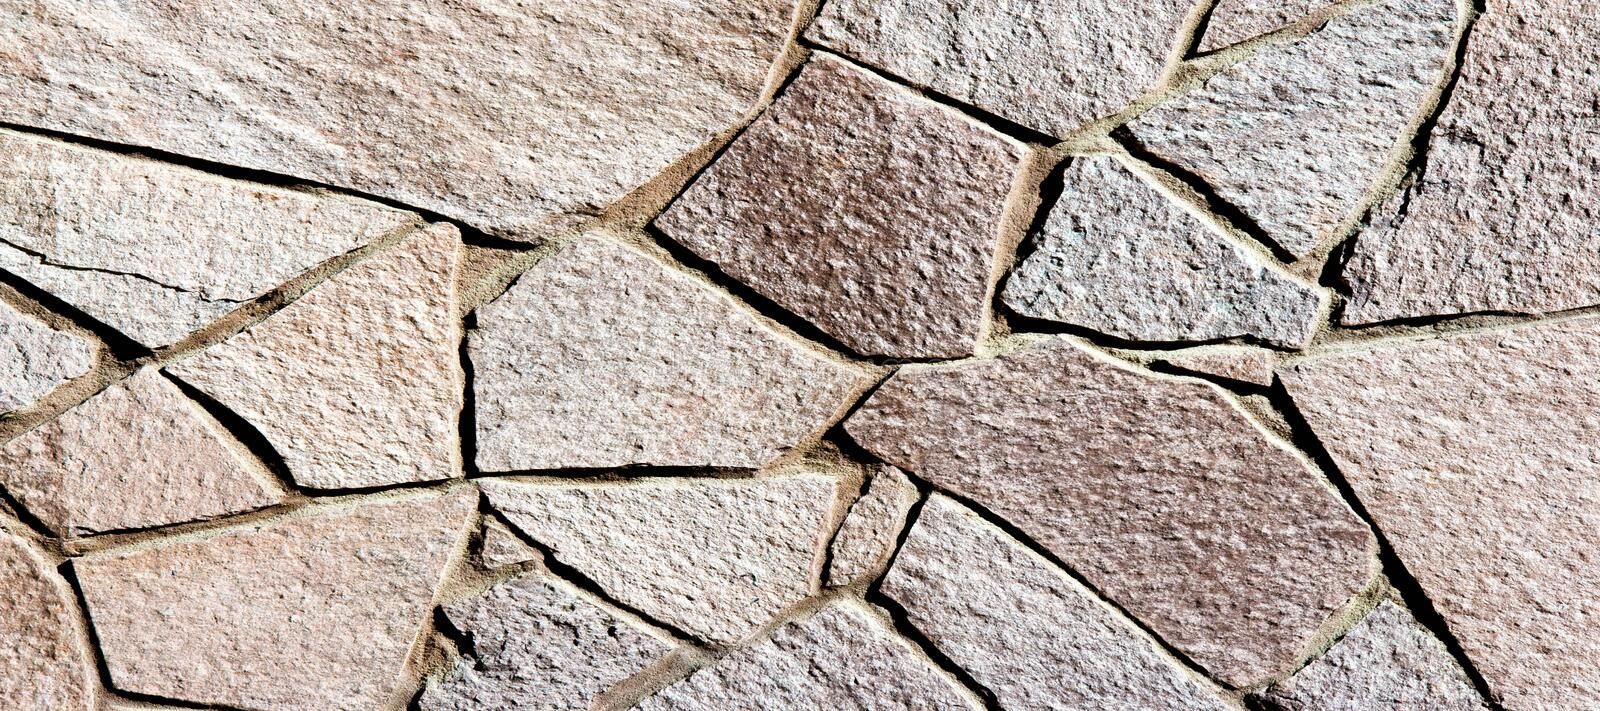 Texture background pattern. Granite stone, sandstone. finishing of buildings fences,  sedimentary rock, consisting of sand or royalty free stock image